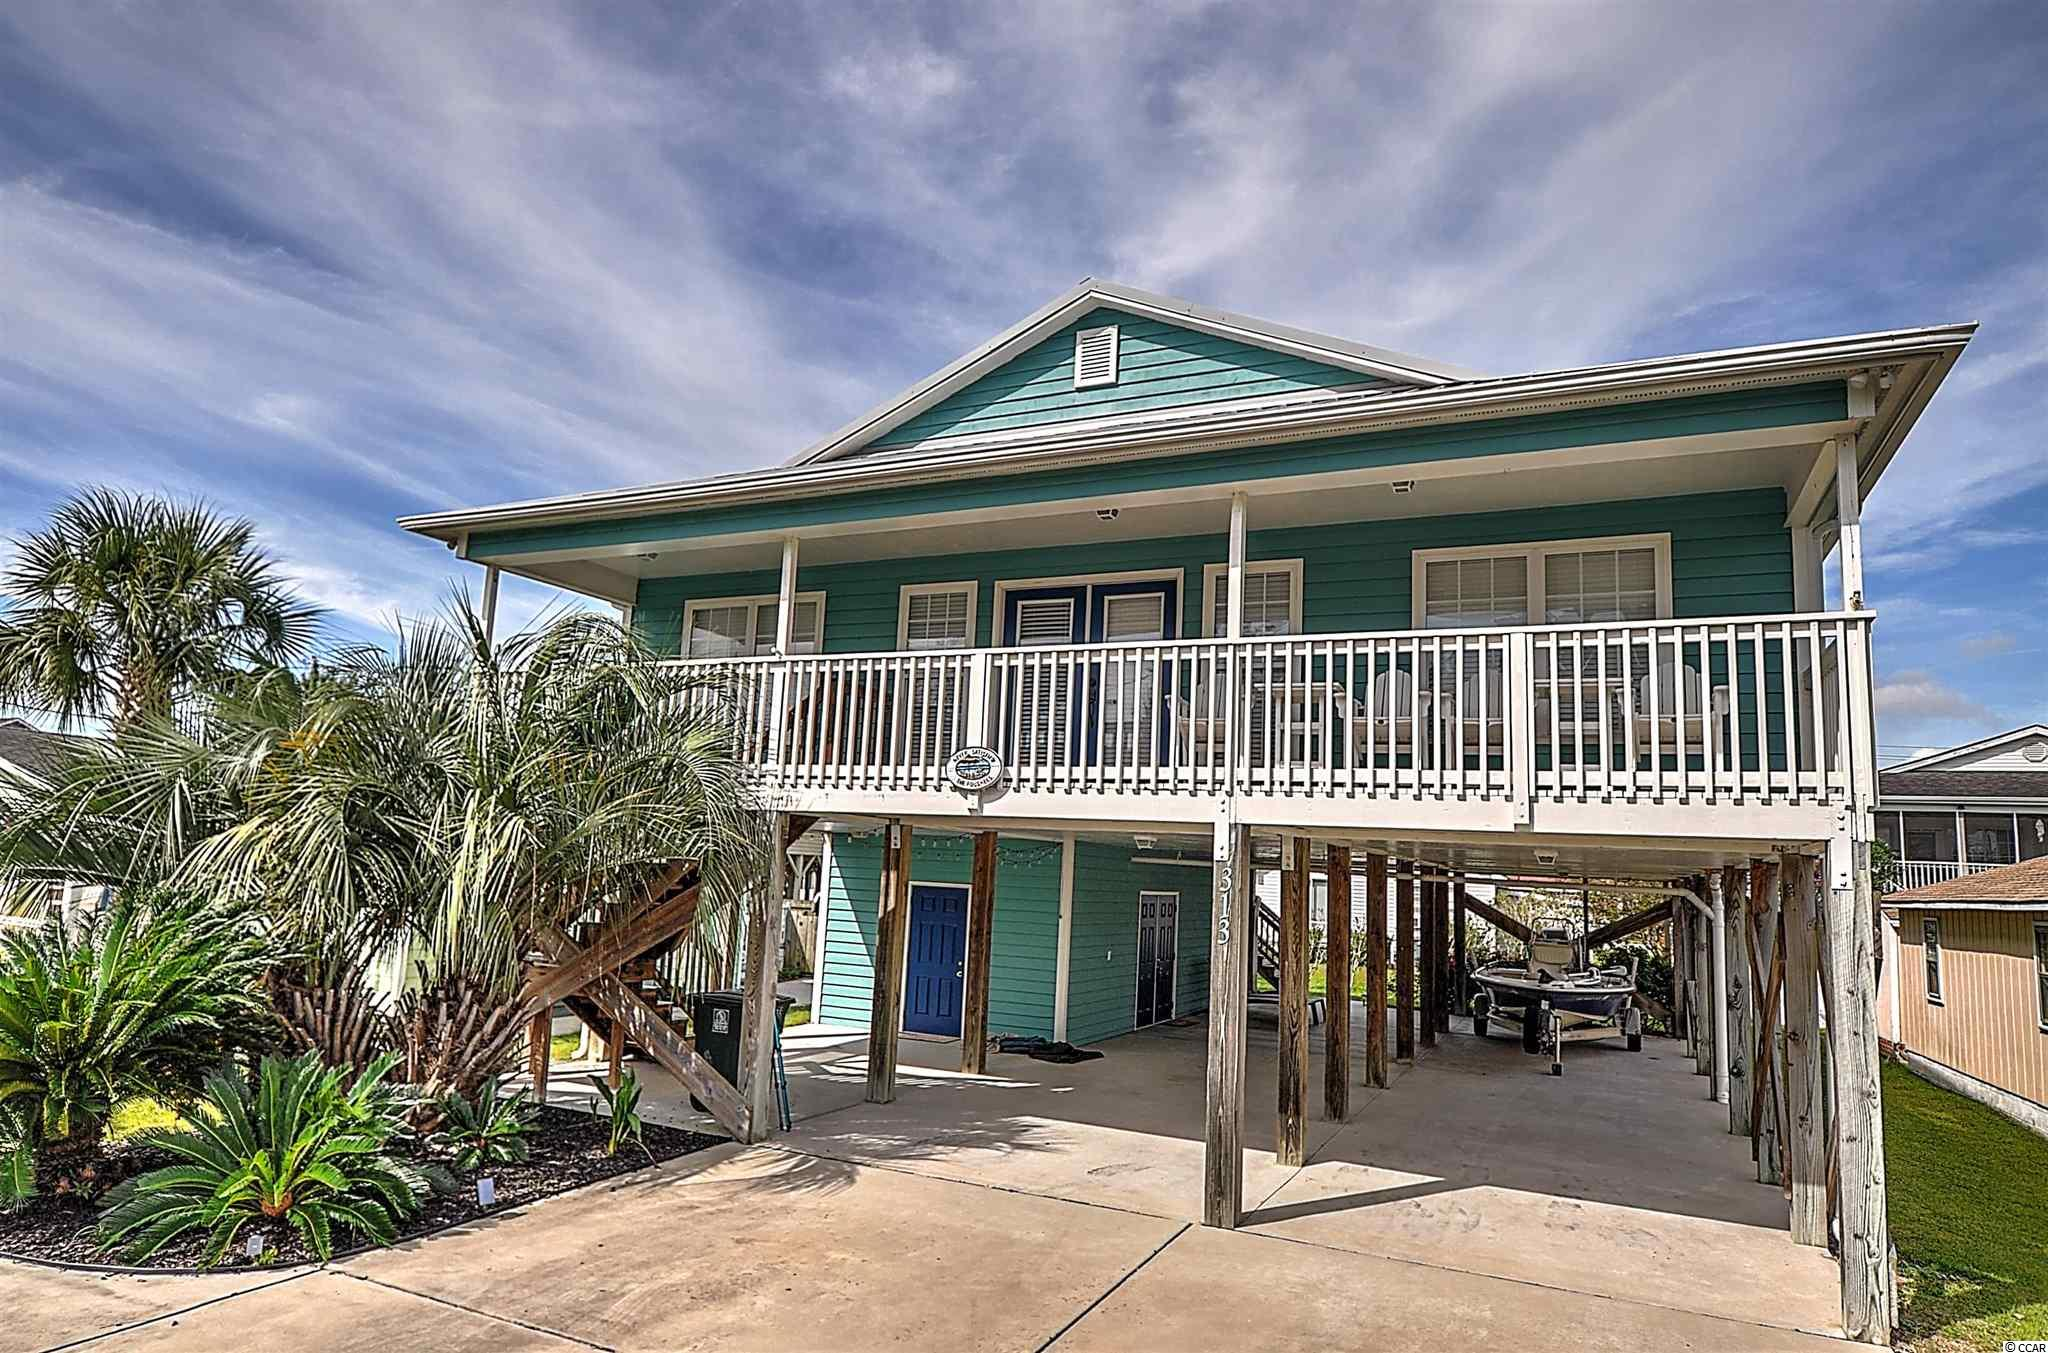 So close to the beach and Sea Mountain Hwy you literally don't need a golf cart! Roof replaced in 2013 with metal roof, HVAC replaced in 2020, under house storage added in approx 2015. This 3 bedroom 2 bath home is located in the highly sought after Cherry Grove Beach section of North Myrtle Beach.